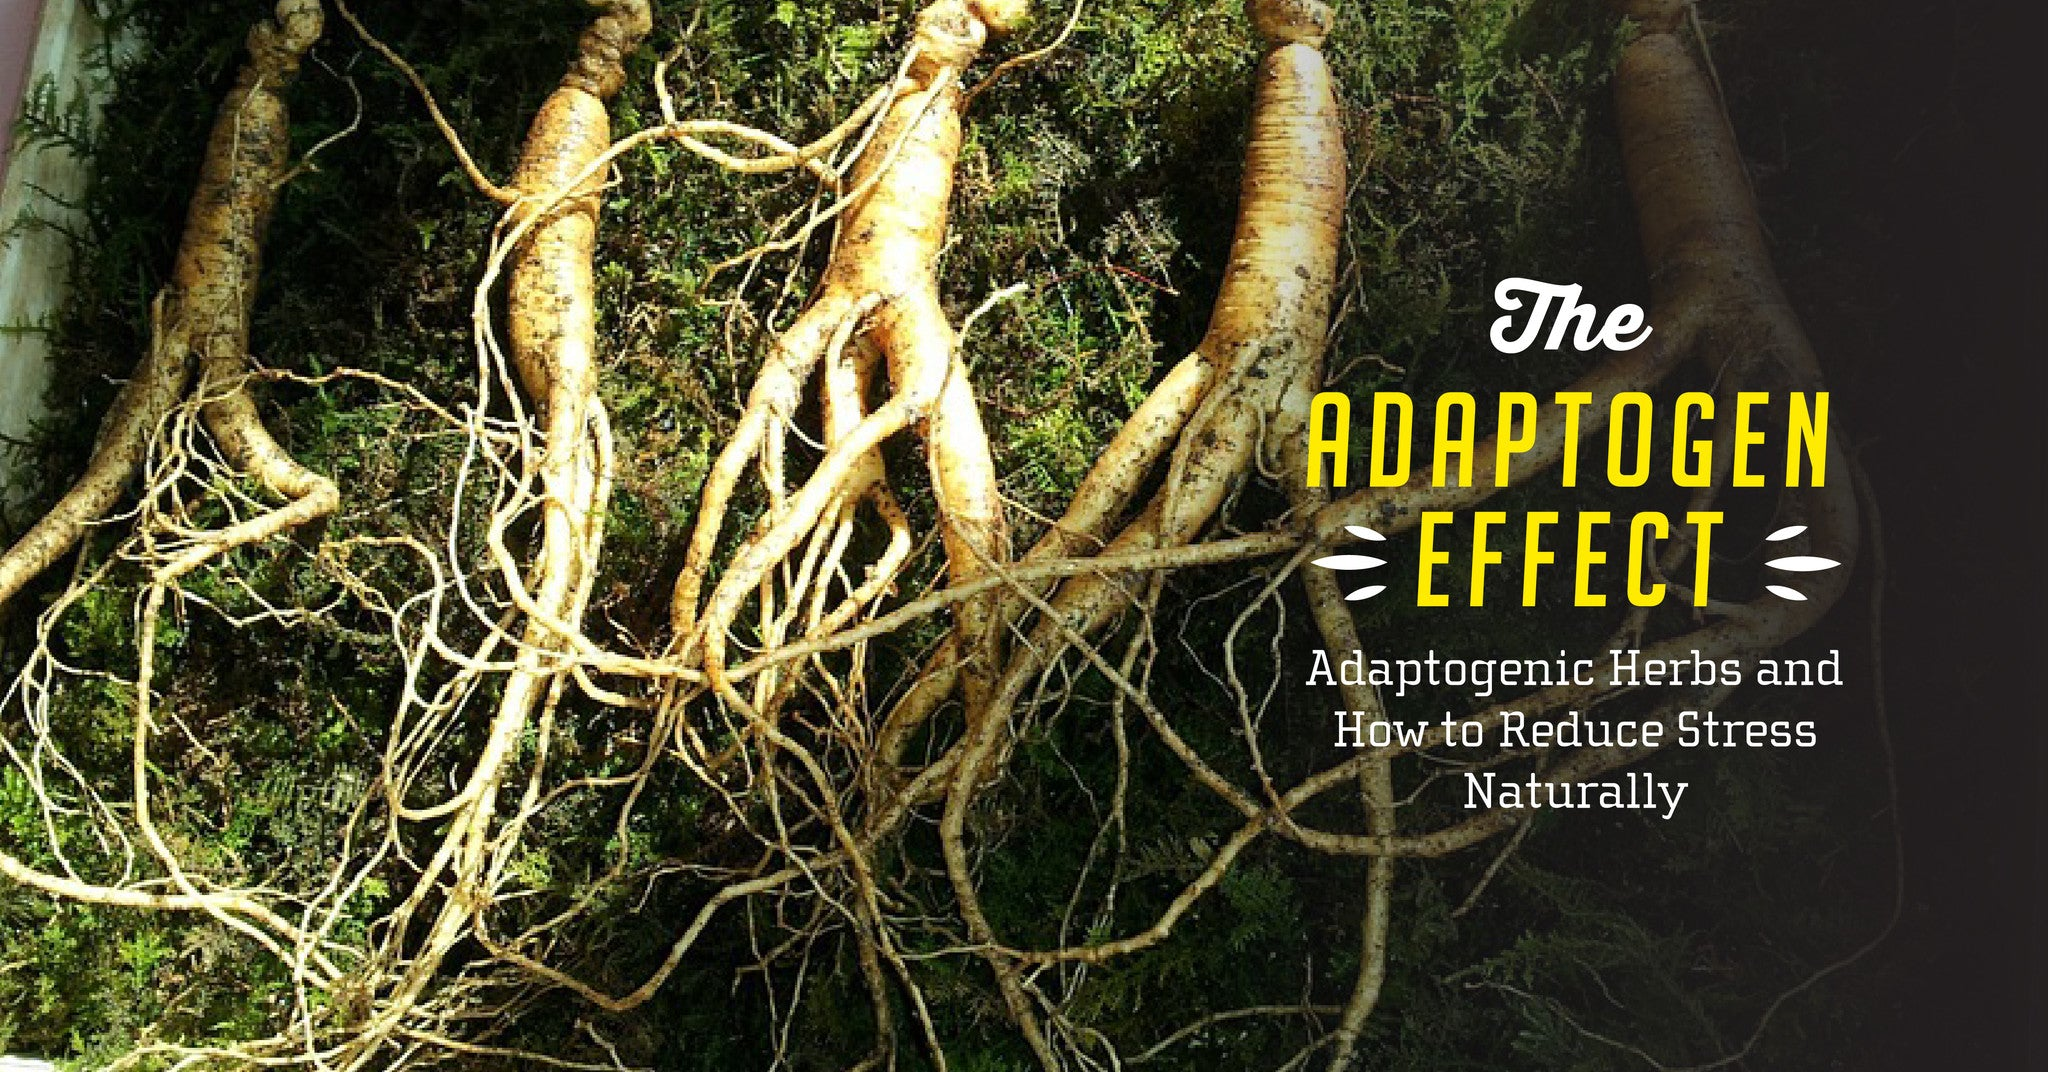 Reduce Stress Naturally with Adaptogenic Herbs